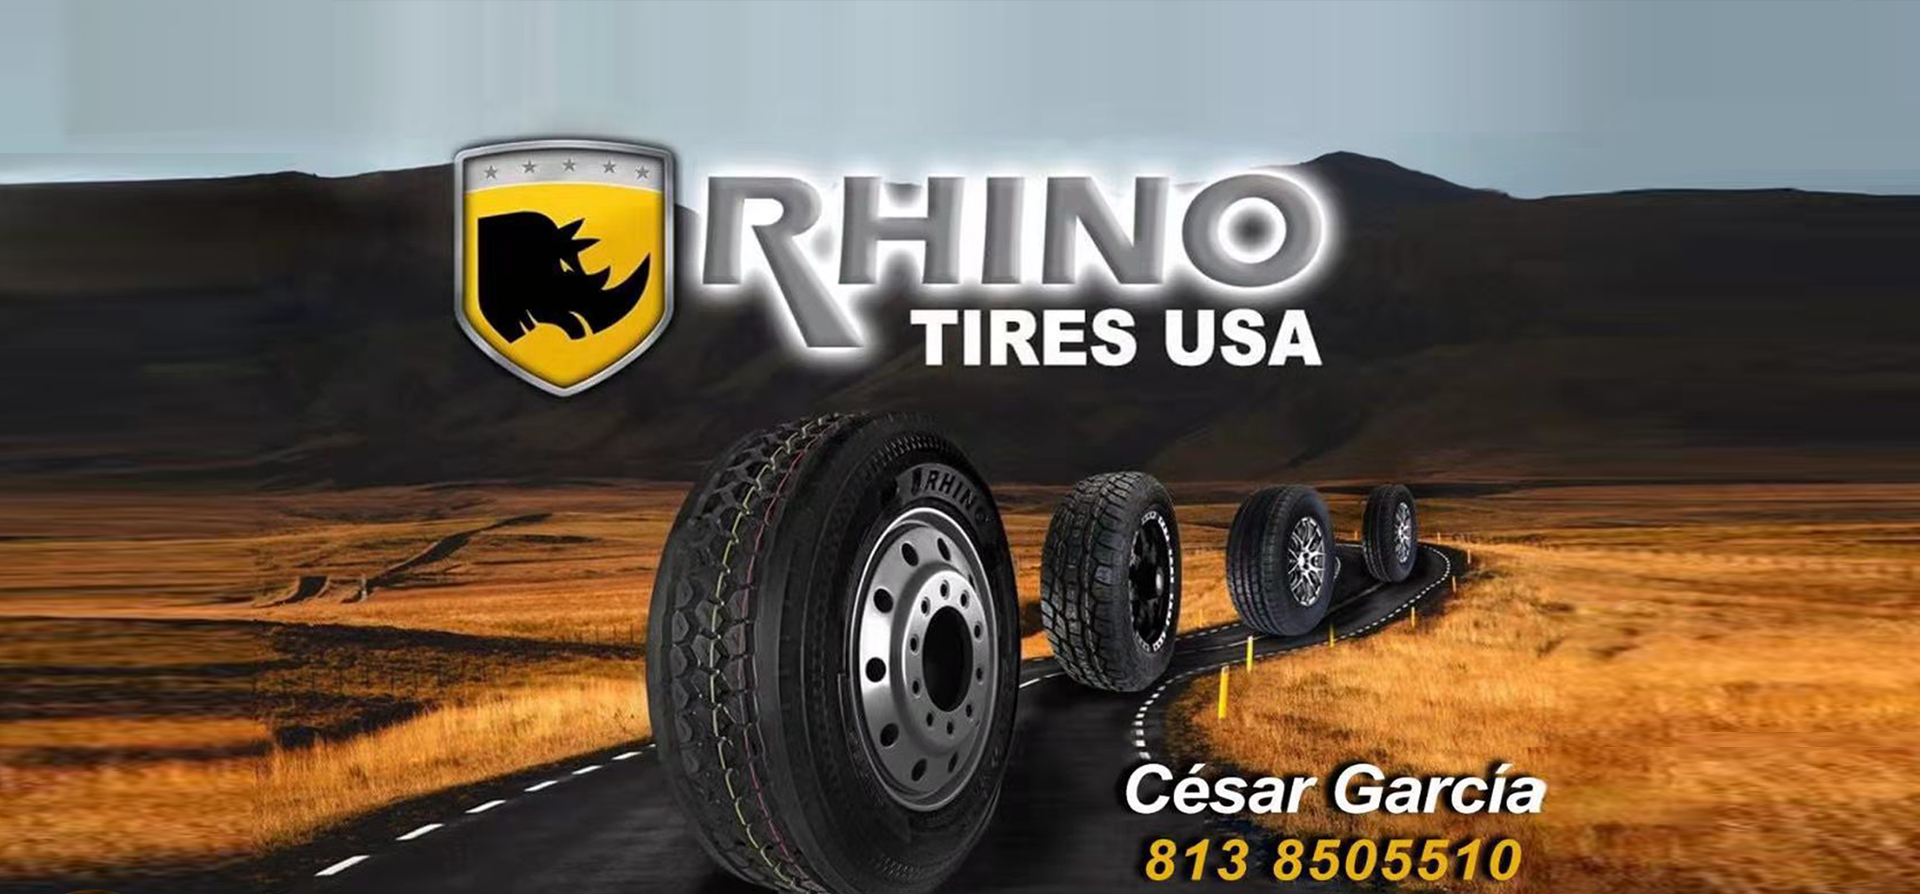 Rhino tire USA LLC